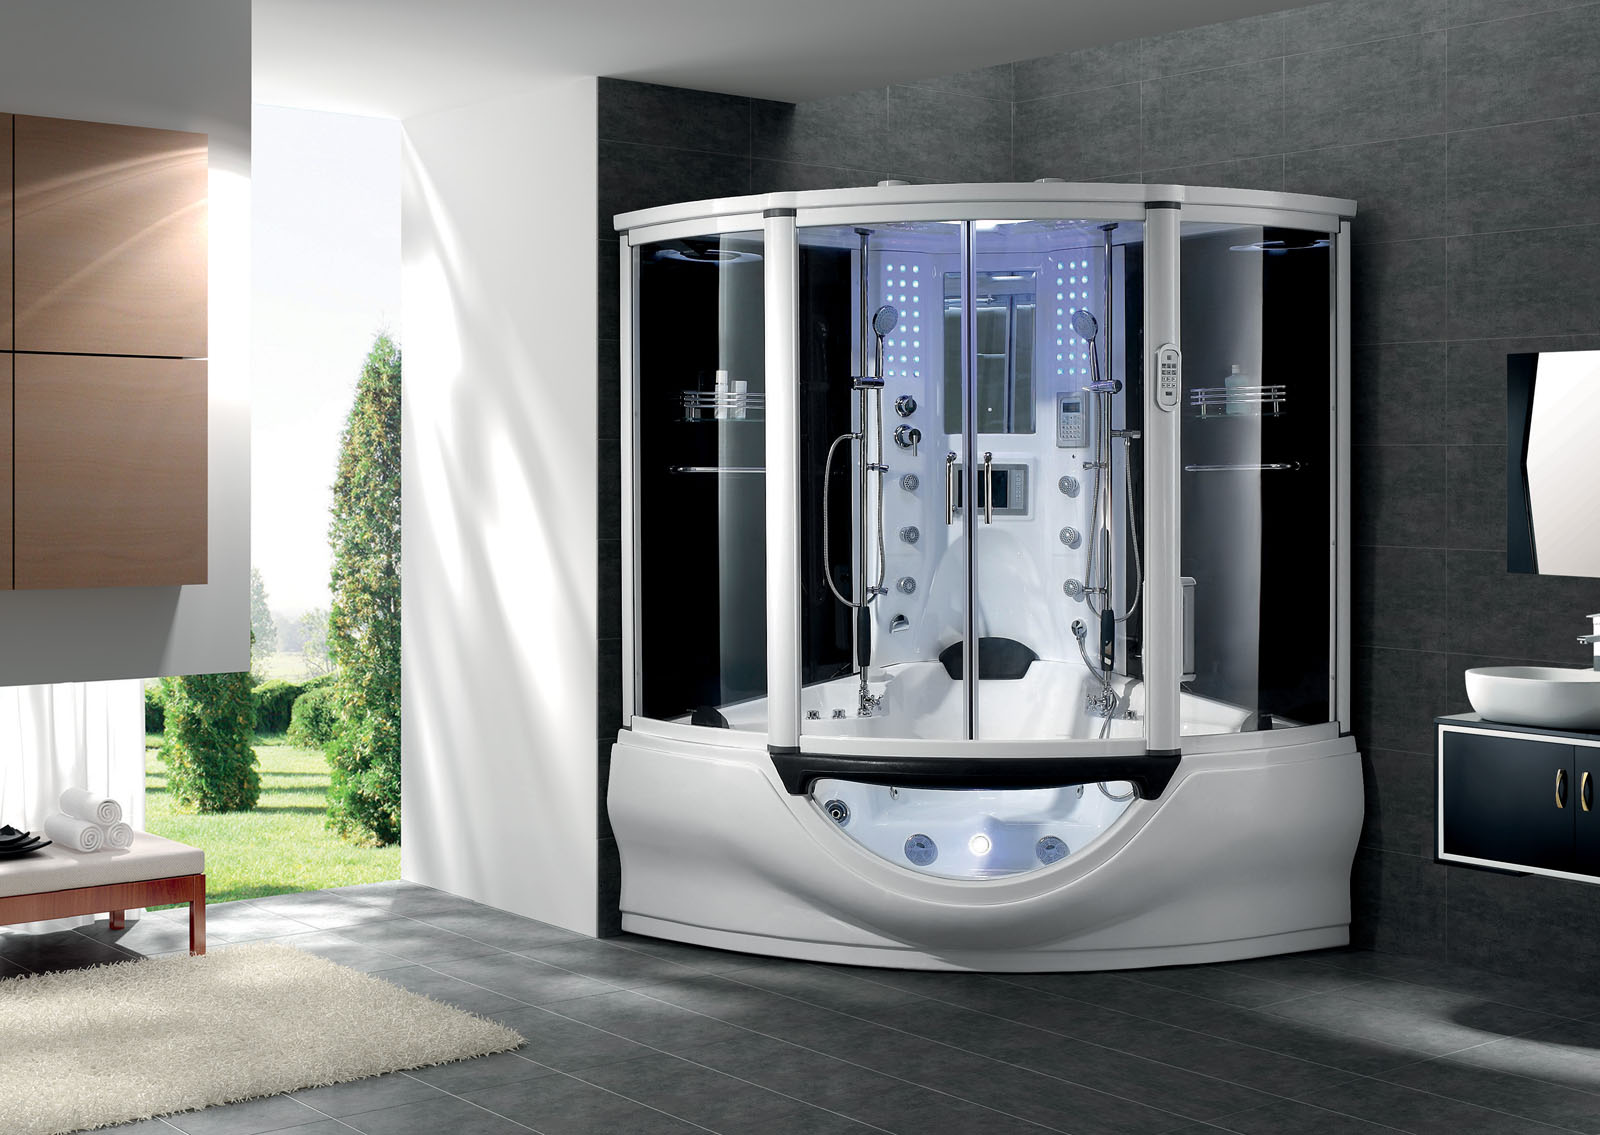 new 2012 computerized massage jacuzzi whirlpool hot tub shower steam sauna spa ebay. Black Bedroom Furniture Sets. Home Design Ideas